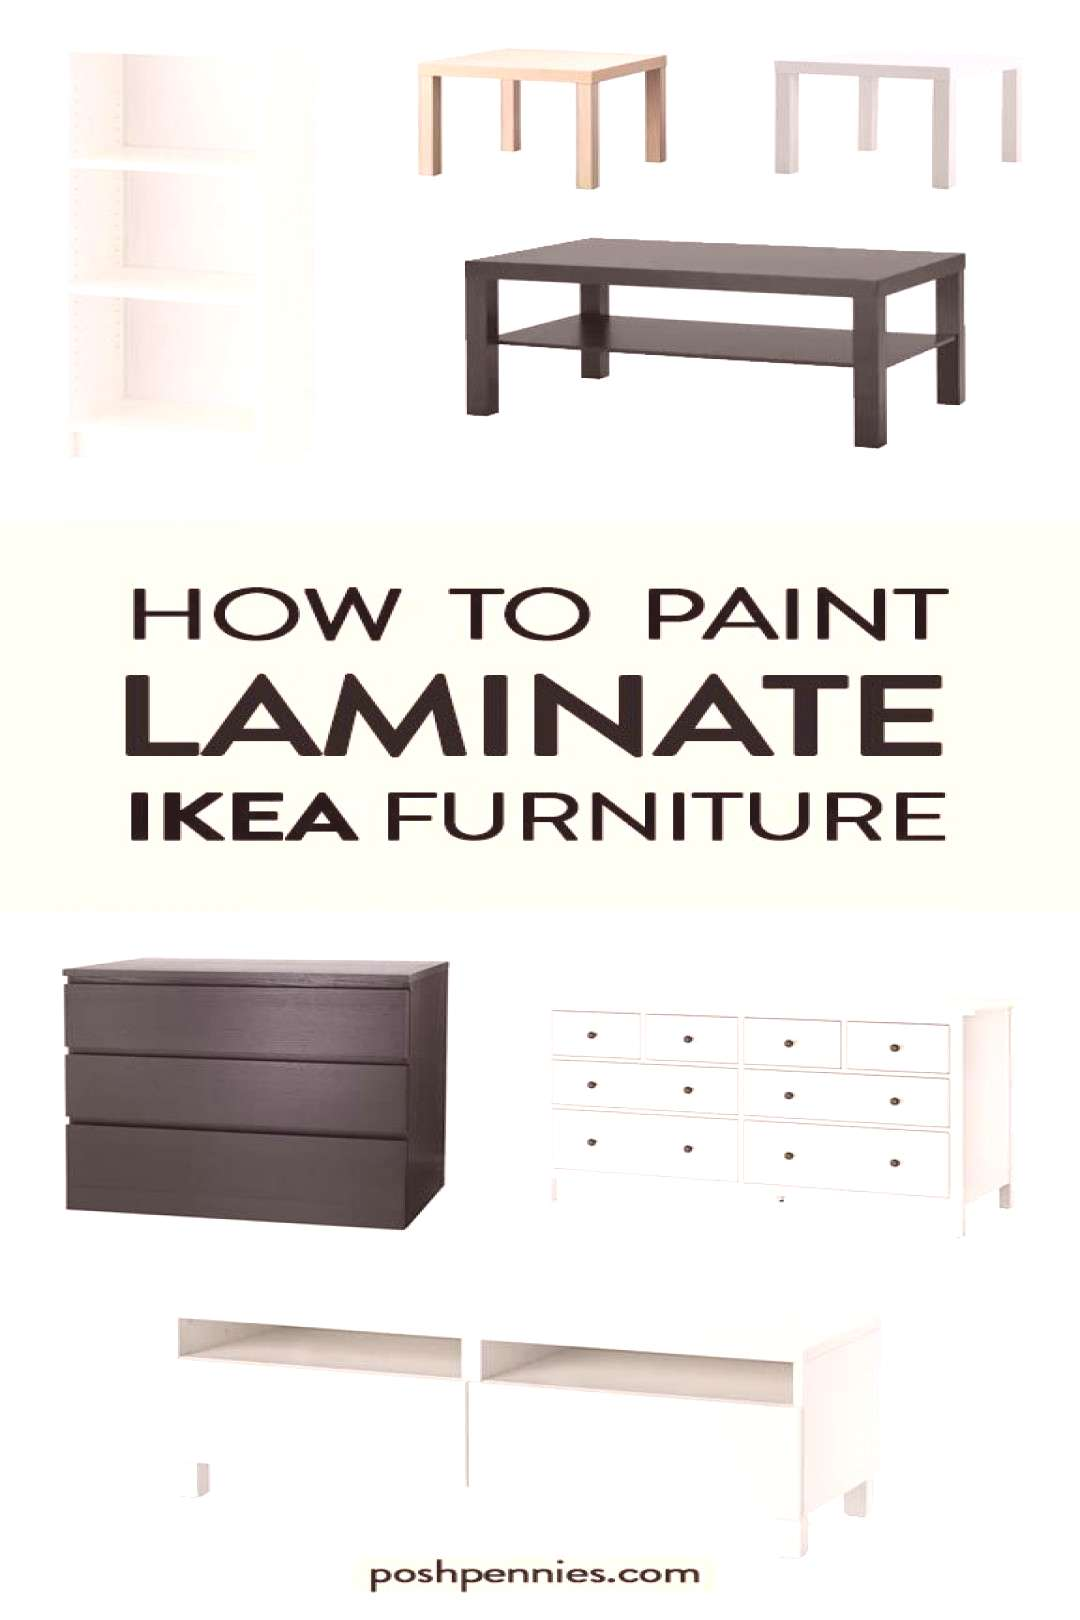 How To Paint IKEA Furniture (laminate, solid wood and metal) | Posh Pennies -  Have you been wantin